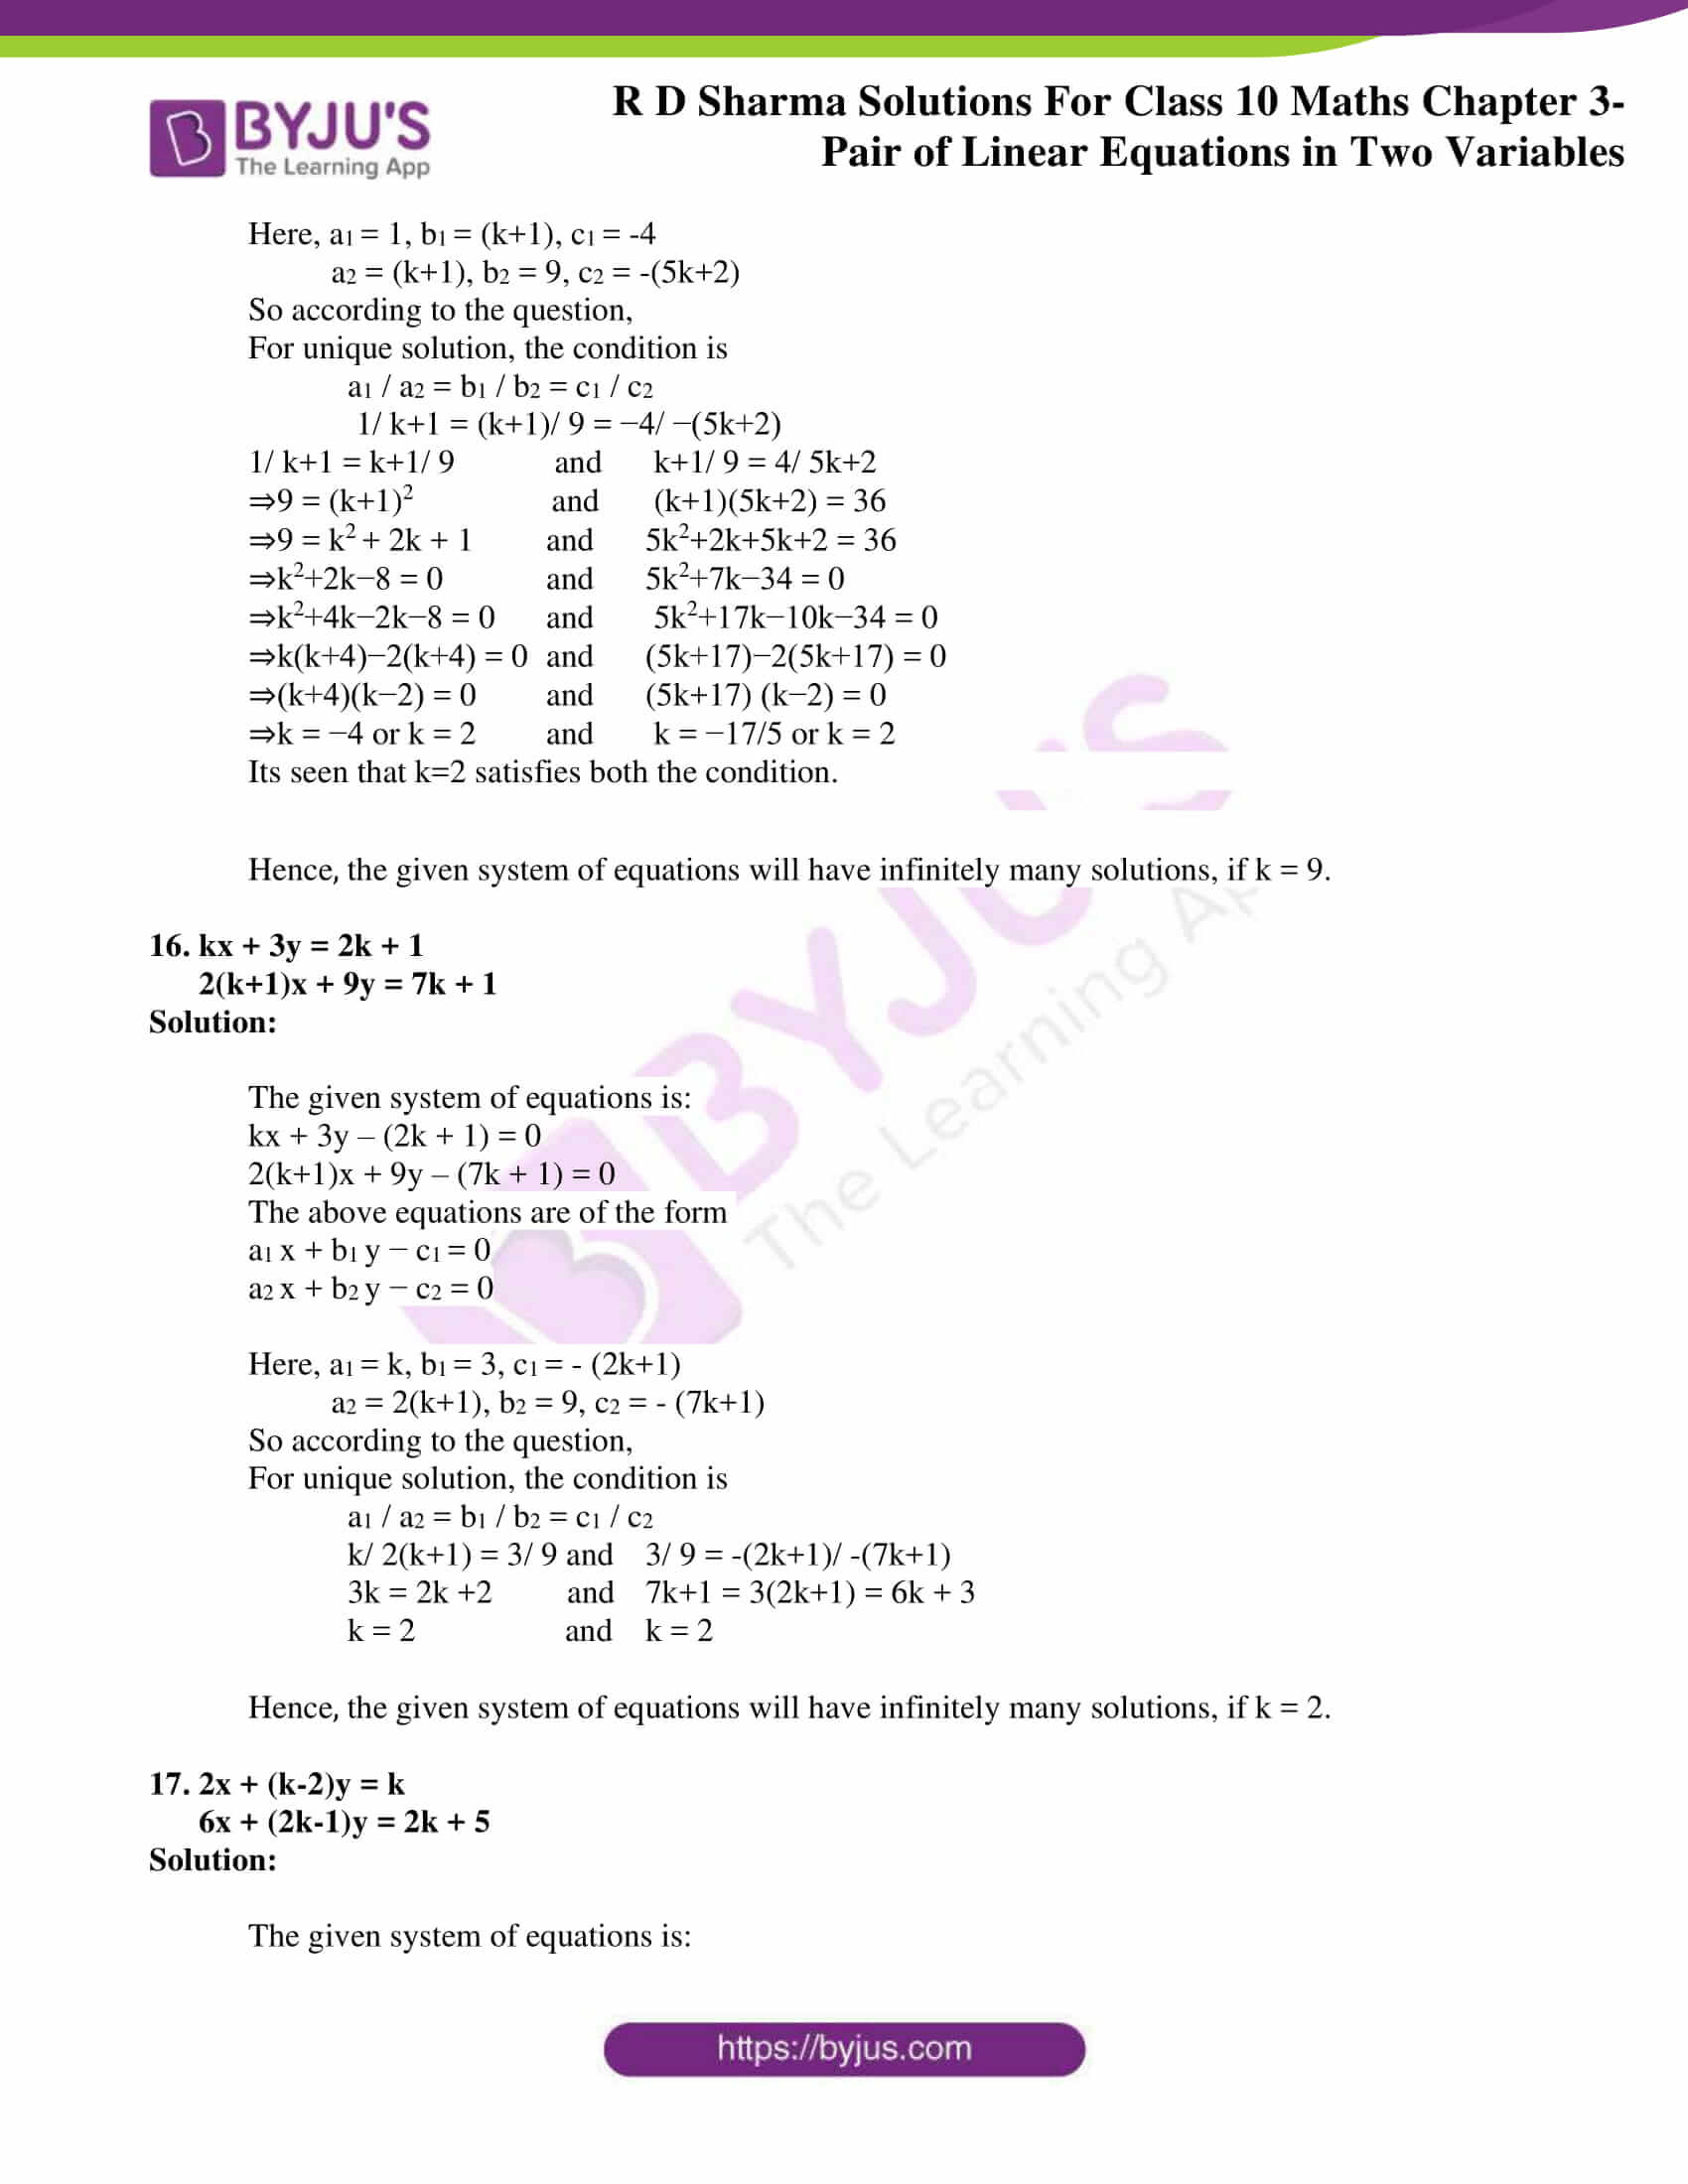 rd sharma solutions for class 10 chapter 3 ex 3.5